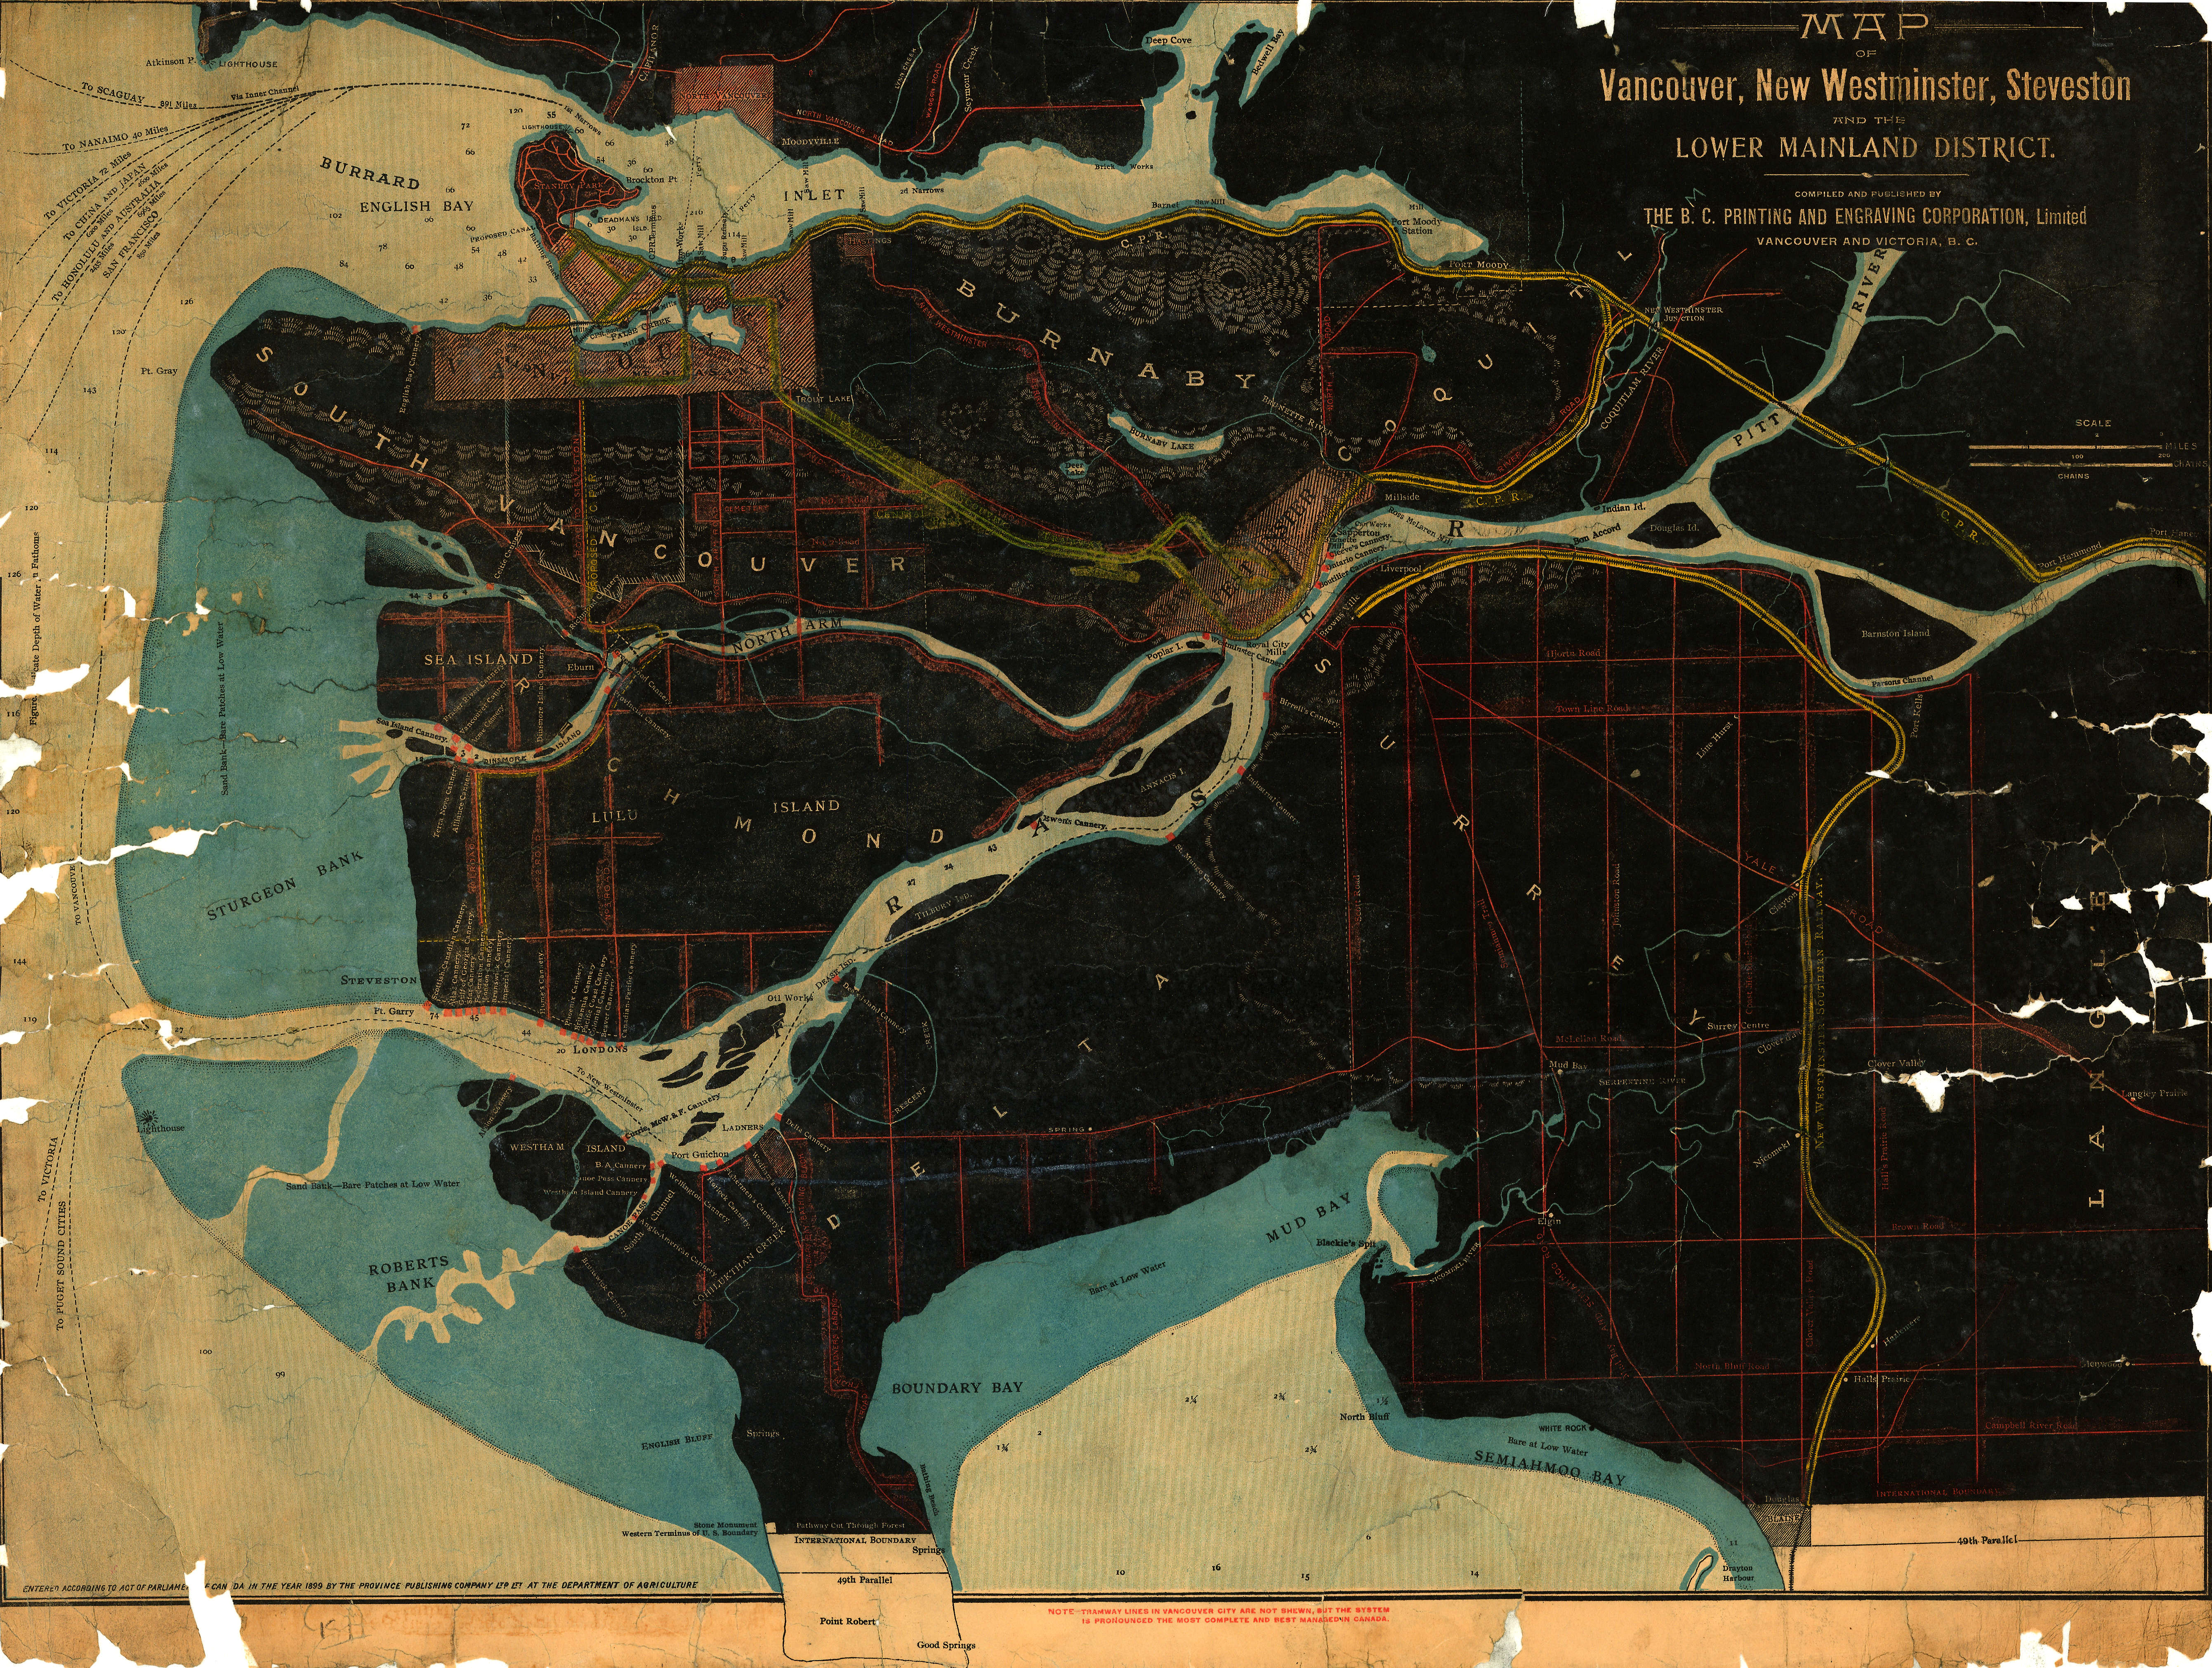 Map of vancouver new westminster steveston and the lower mainland open original digital object gumiabroncs Gallery